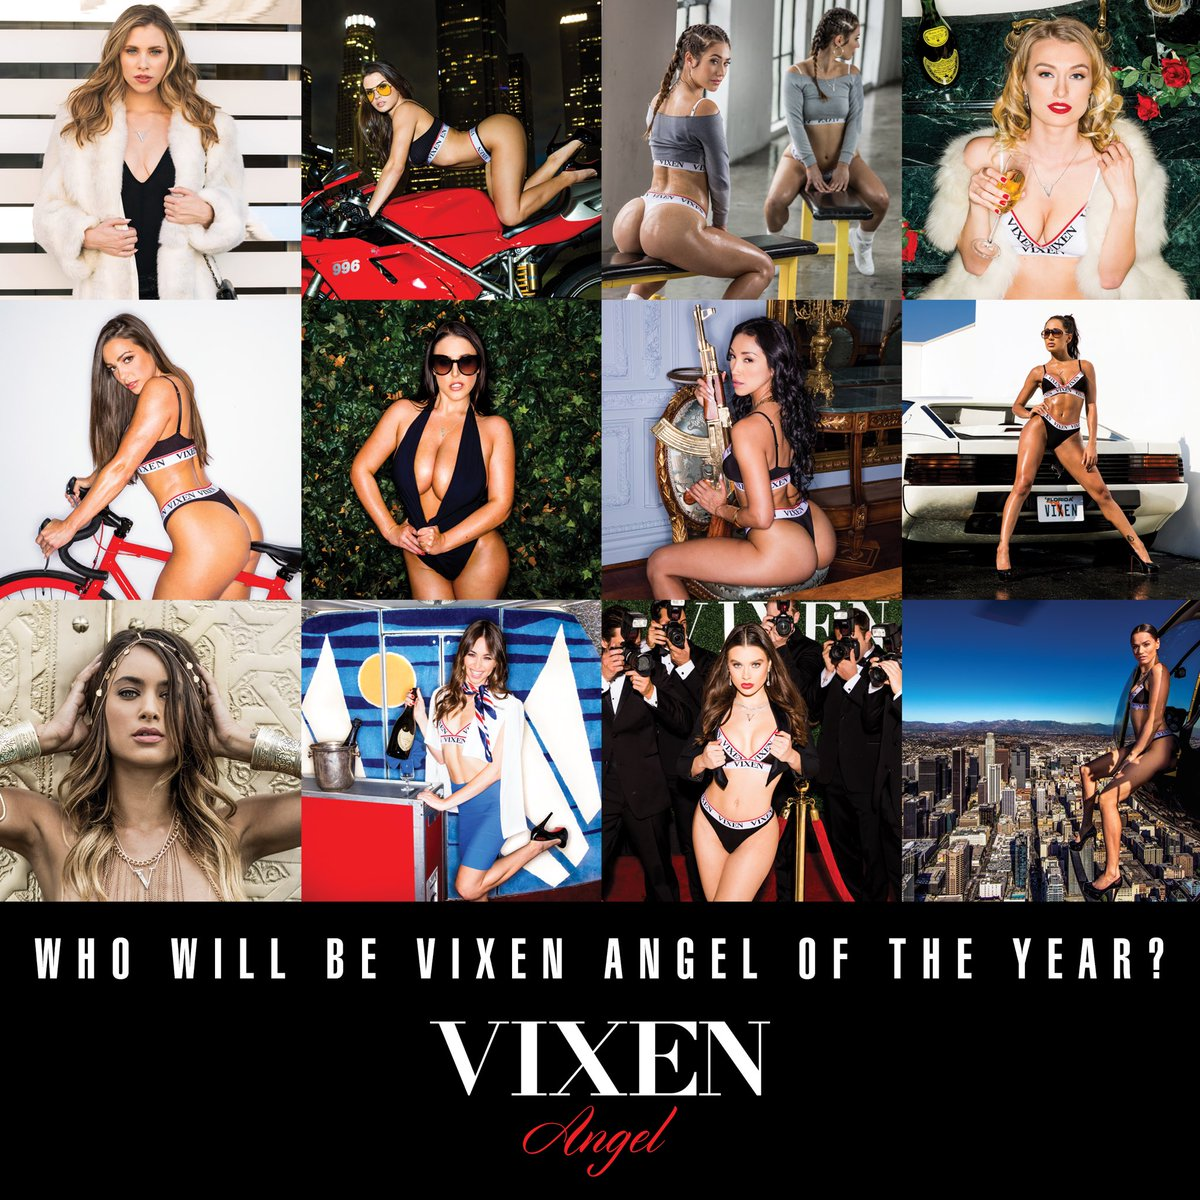 Who will be the @Vixen Angel of the Year?